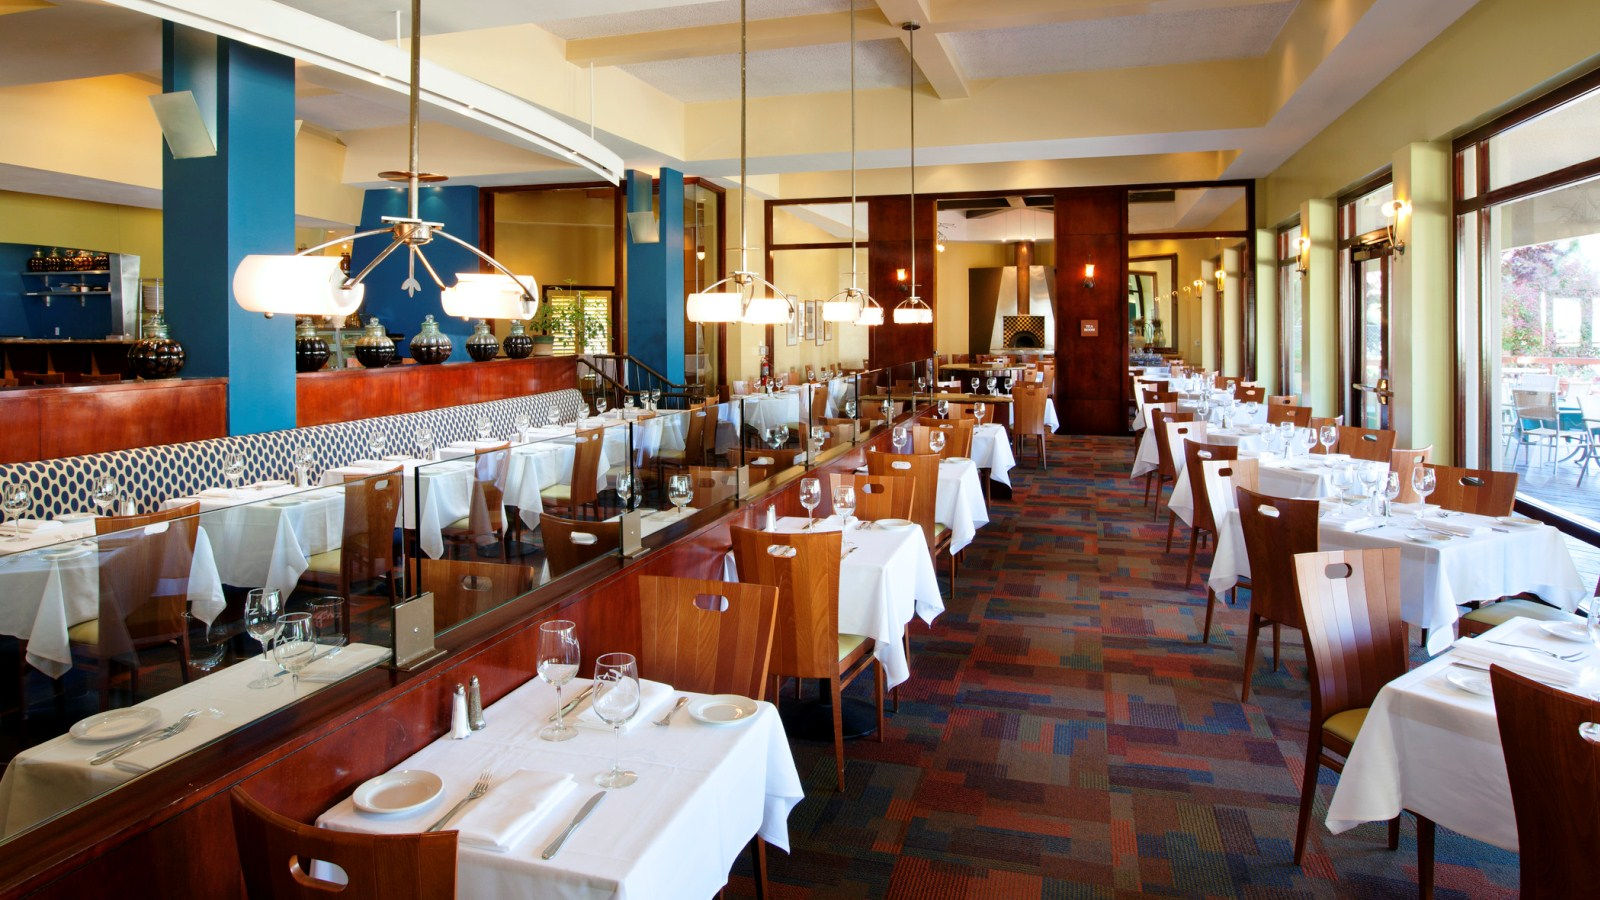 Features - Sunnyvale Restaurant